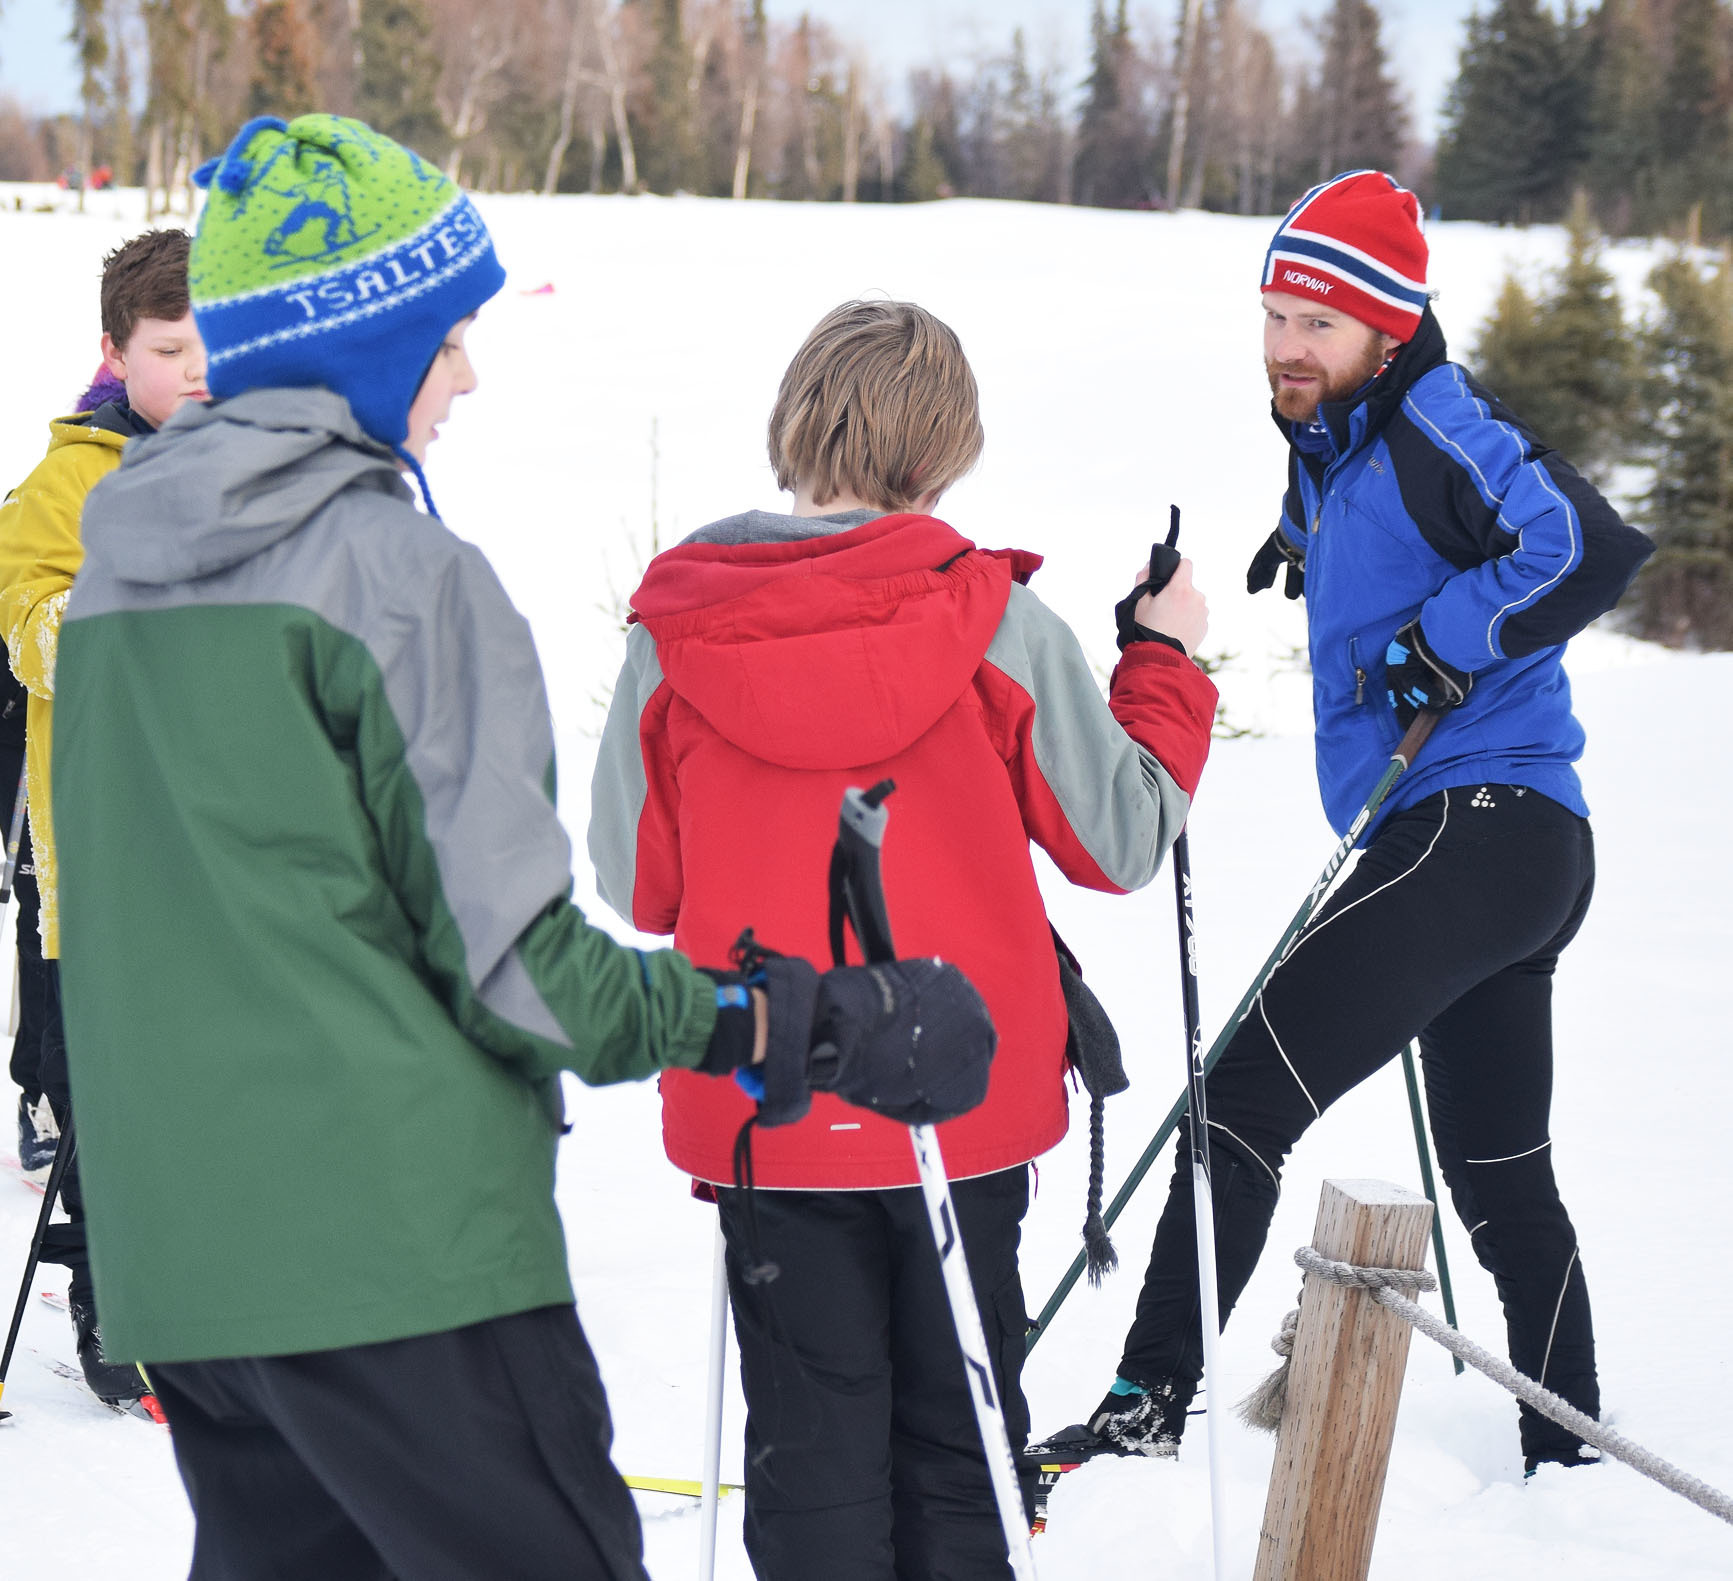 Tsalteshi Trails Youth Ski Program coach Darin Markwardt (red hat) quizzes a group of young skiers, Jan. 28 at the Kenai Golf Course. (Photo by Joey Klecka/Peninsula Clarion)